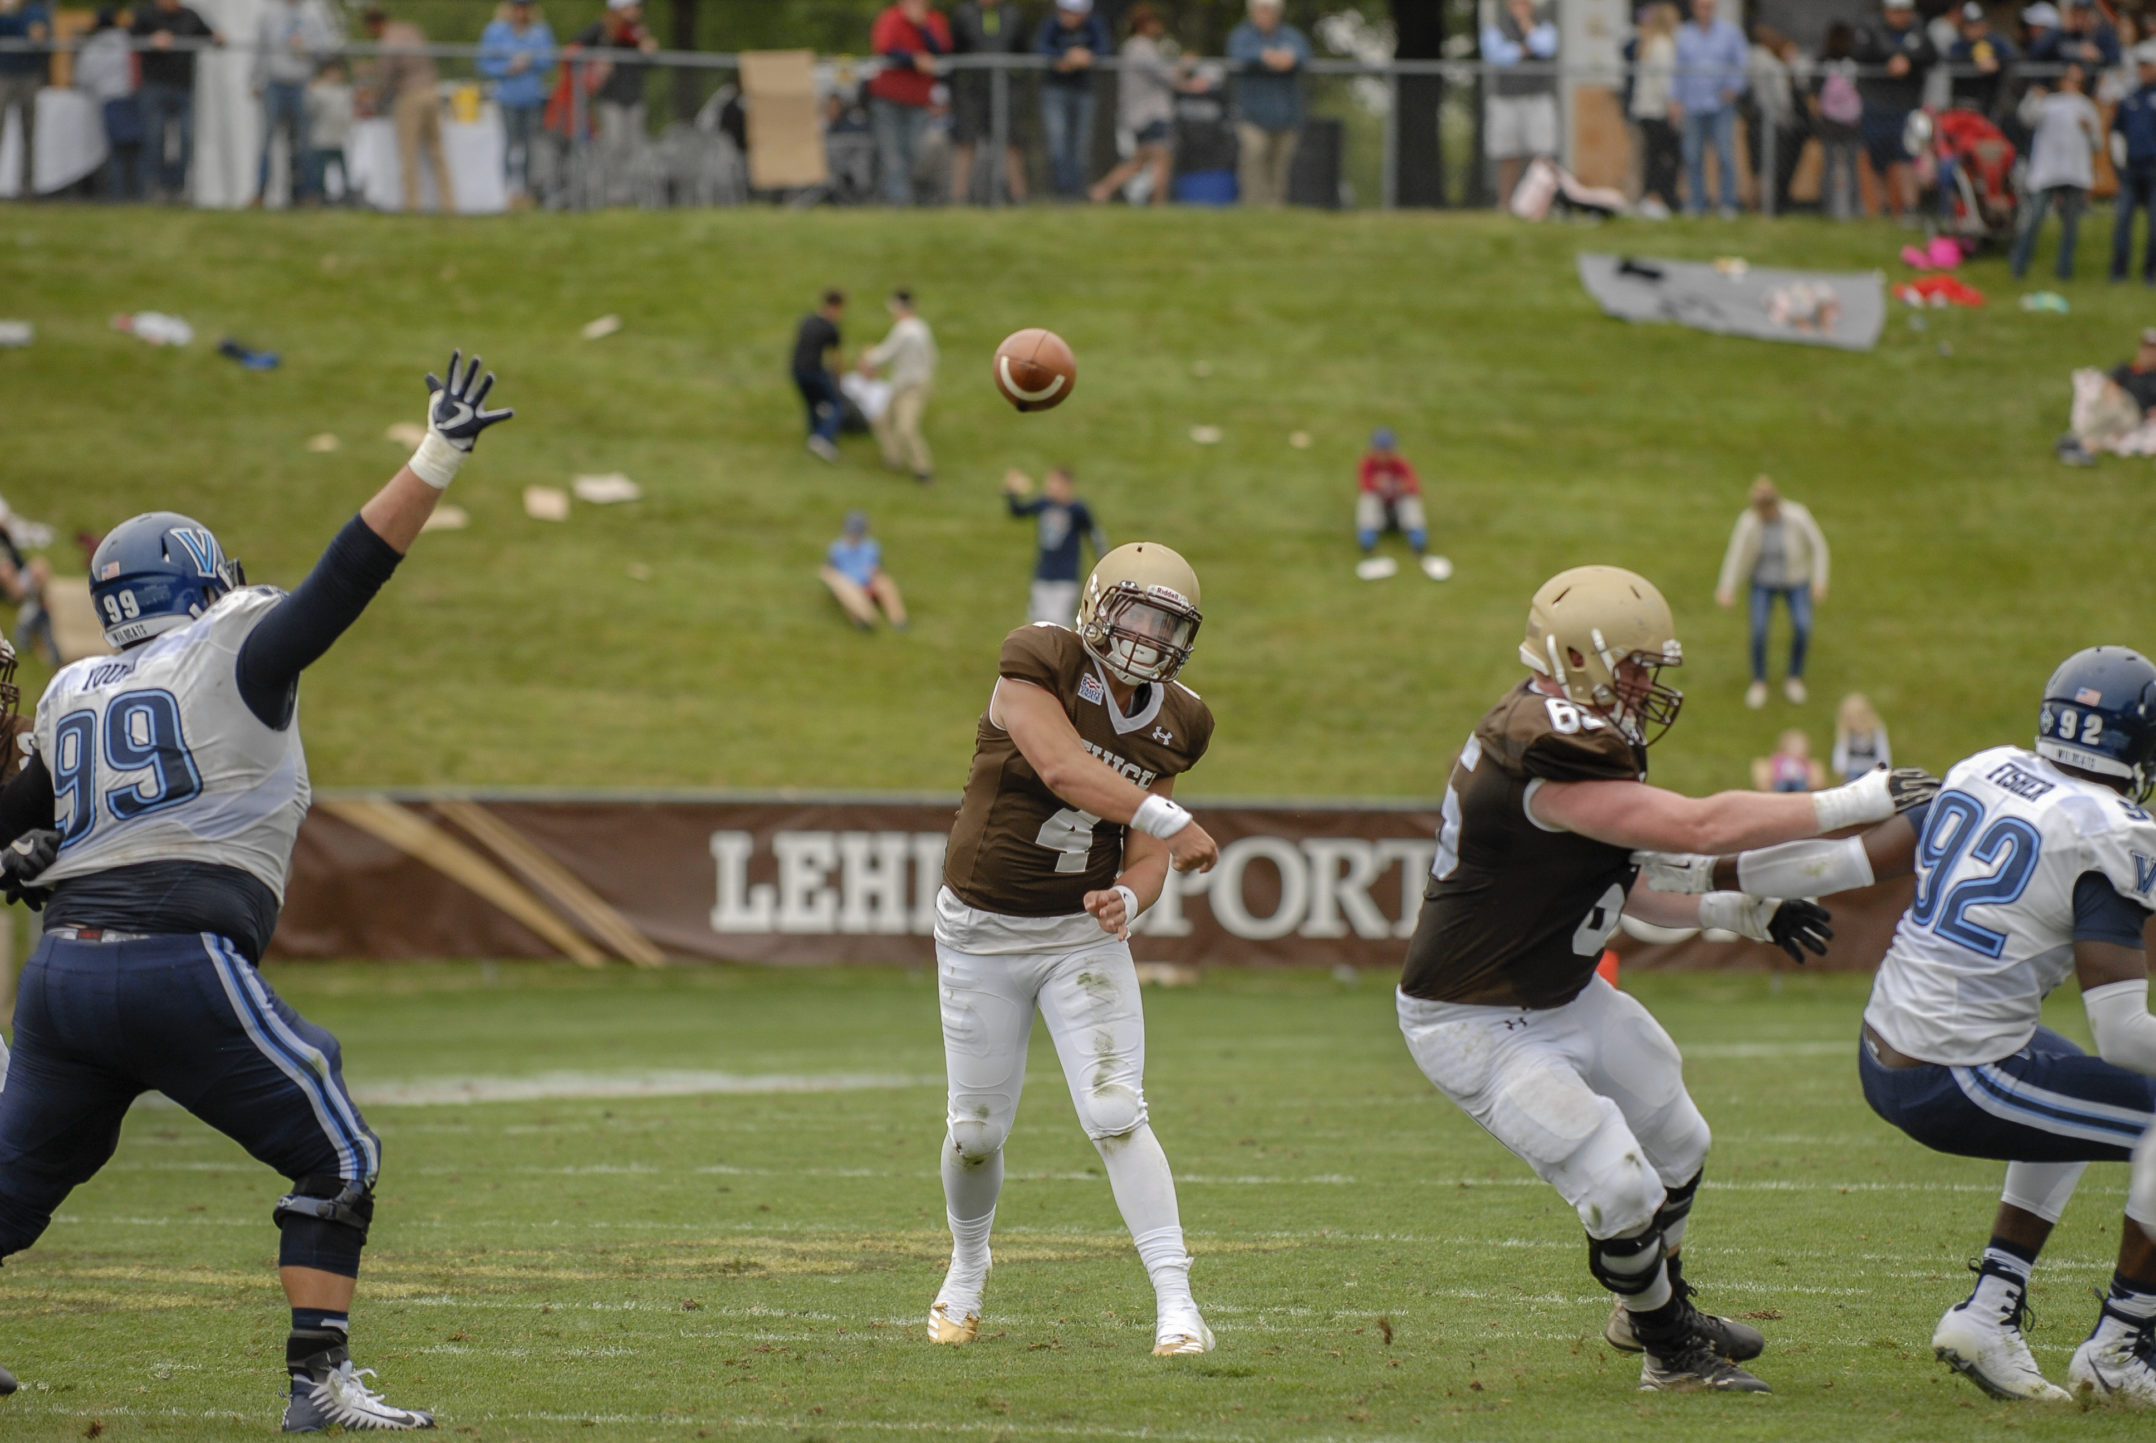 Lehigh junior quarterback Brad Mayes throws the football during Lehigh's loss against Villanova on Saturday, Sept. 2, 2017 at Goodman Stadium. Mayes had 39 passing attempts with 33 completions totaling 406 yards and 4 touchdowns. (Andy Bickel/B&W Staff)